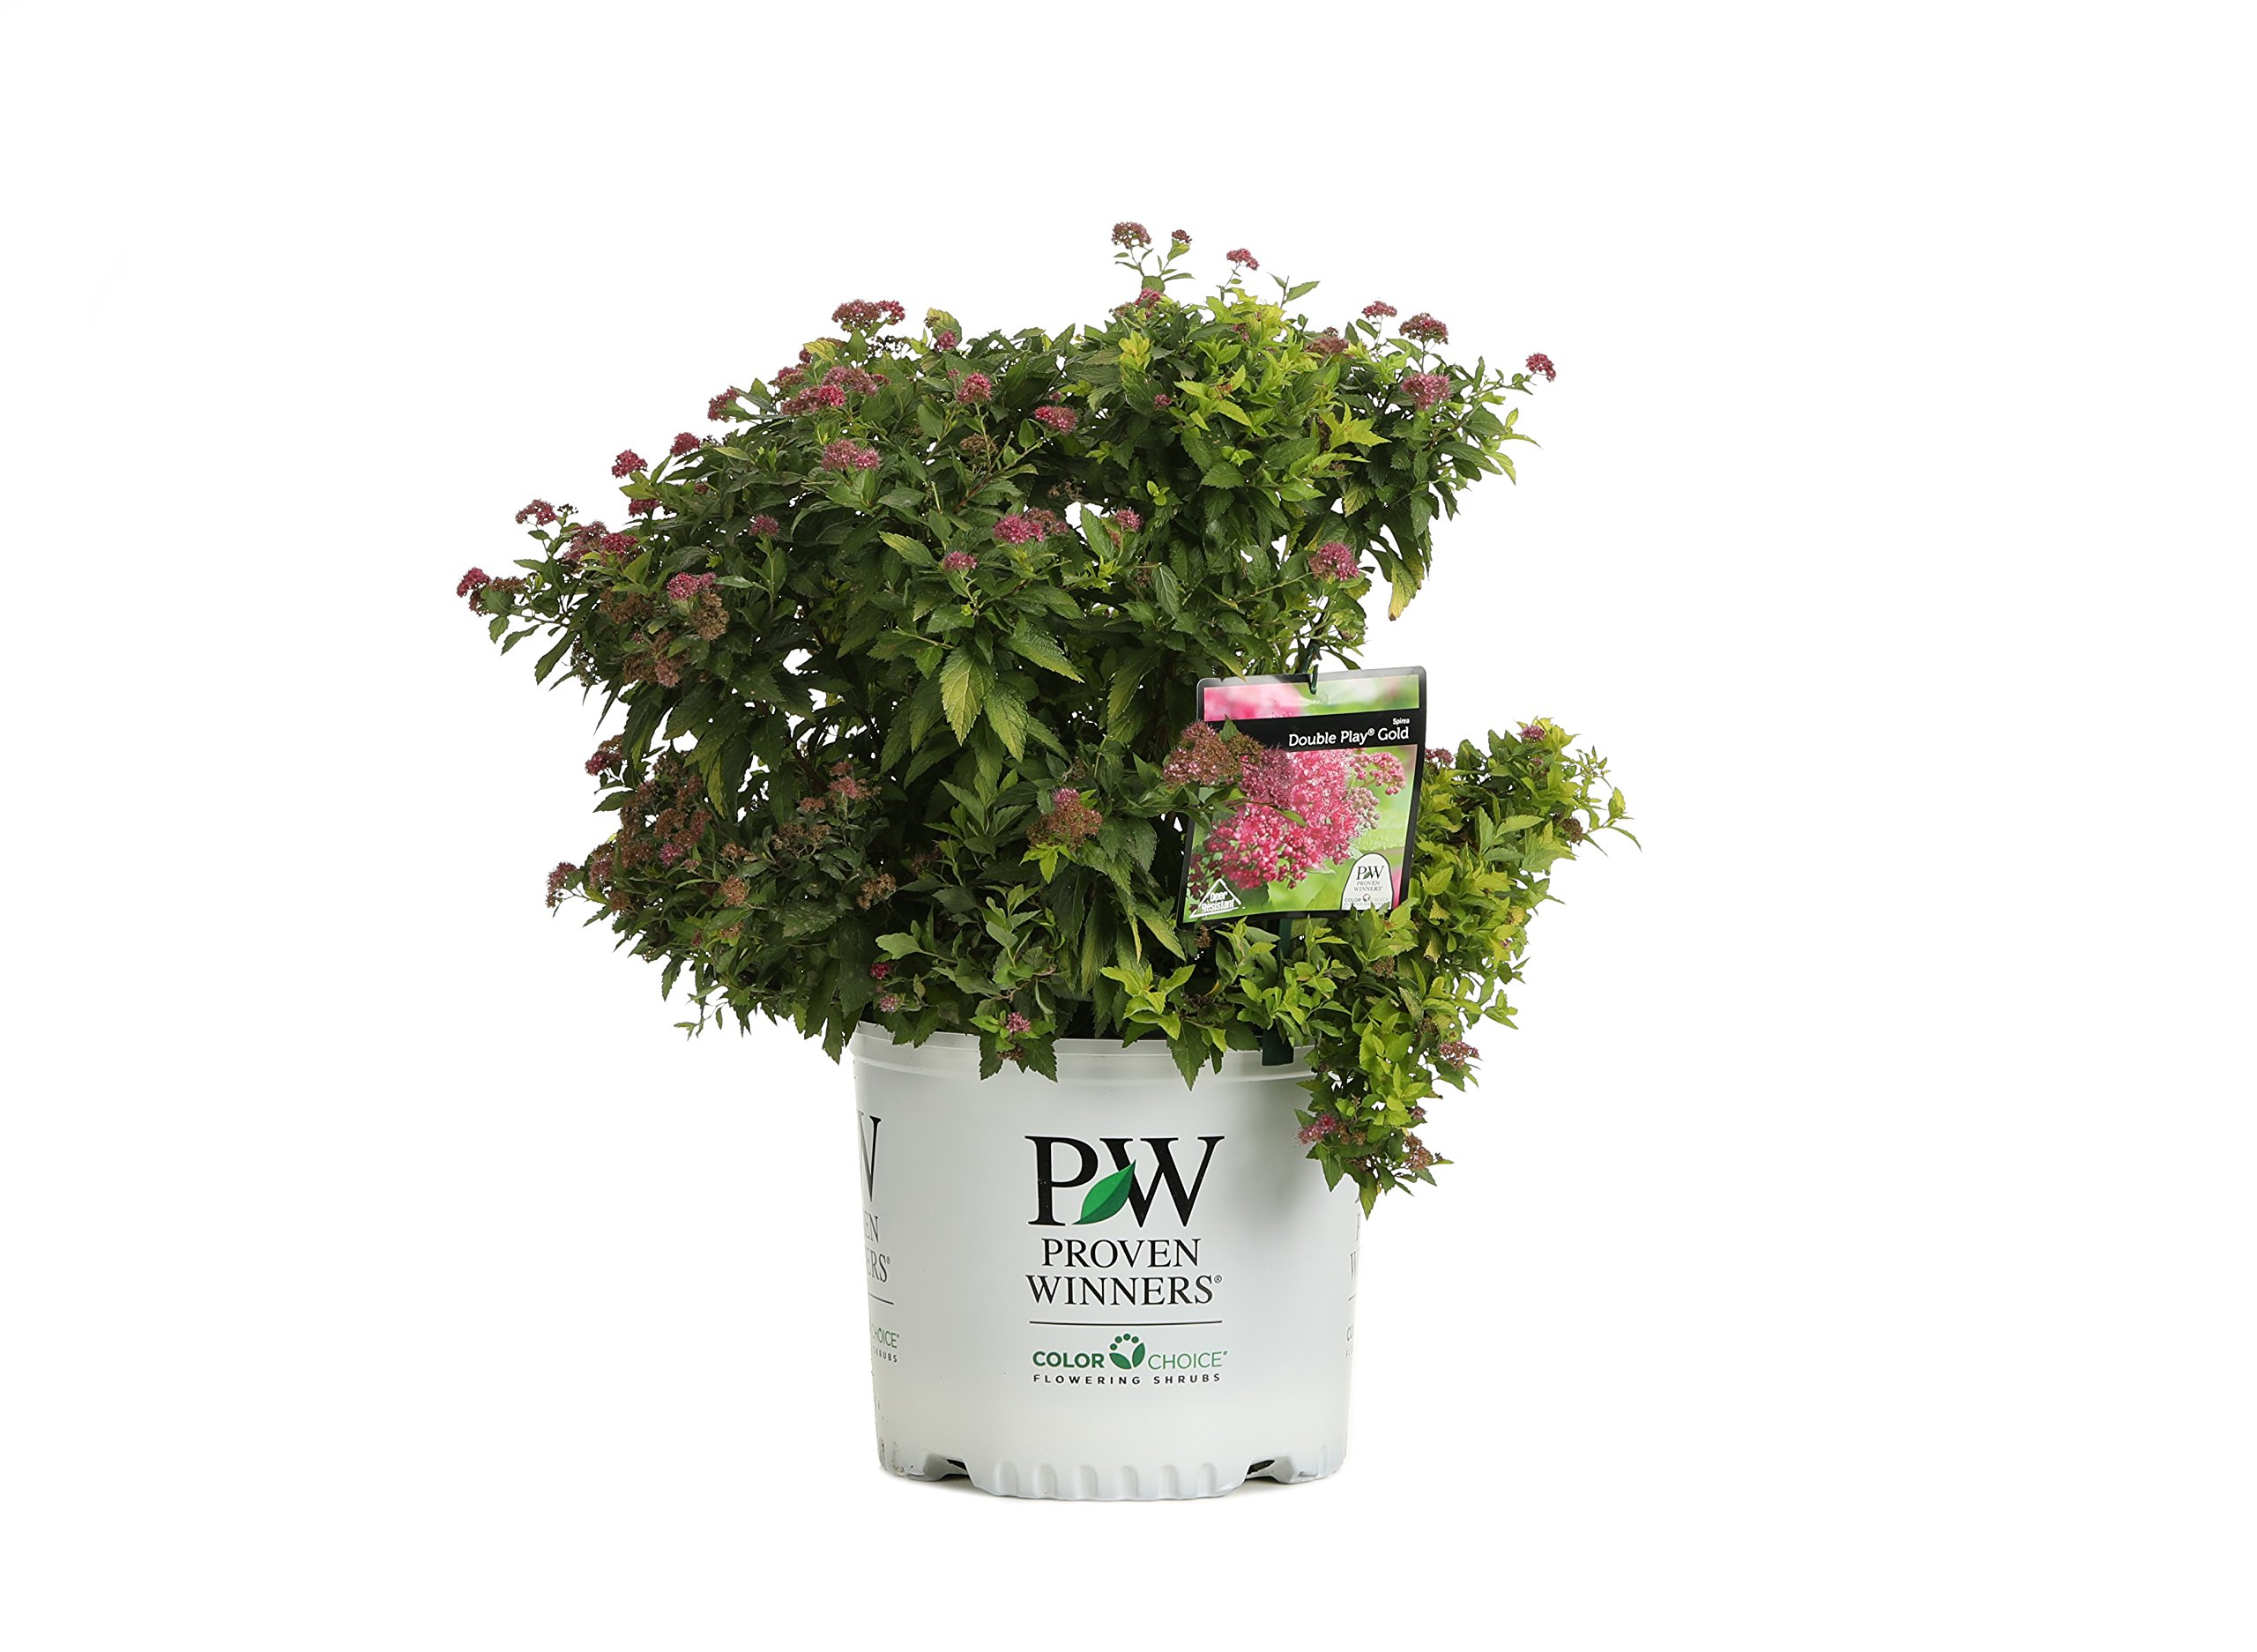 3 Gal. Double Play Gold Spirea (Spiraea) Live Shrub, Pink Flowers with Green and Yellow Foliage by Proven Winners